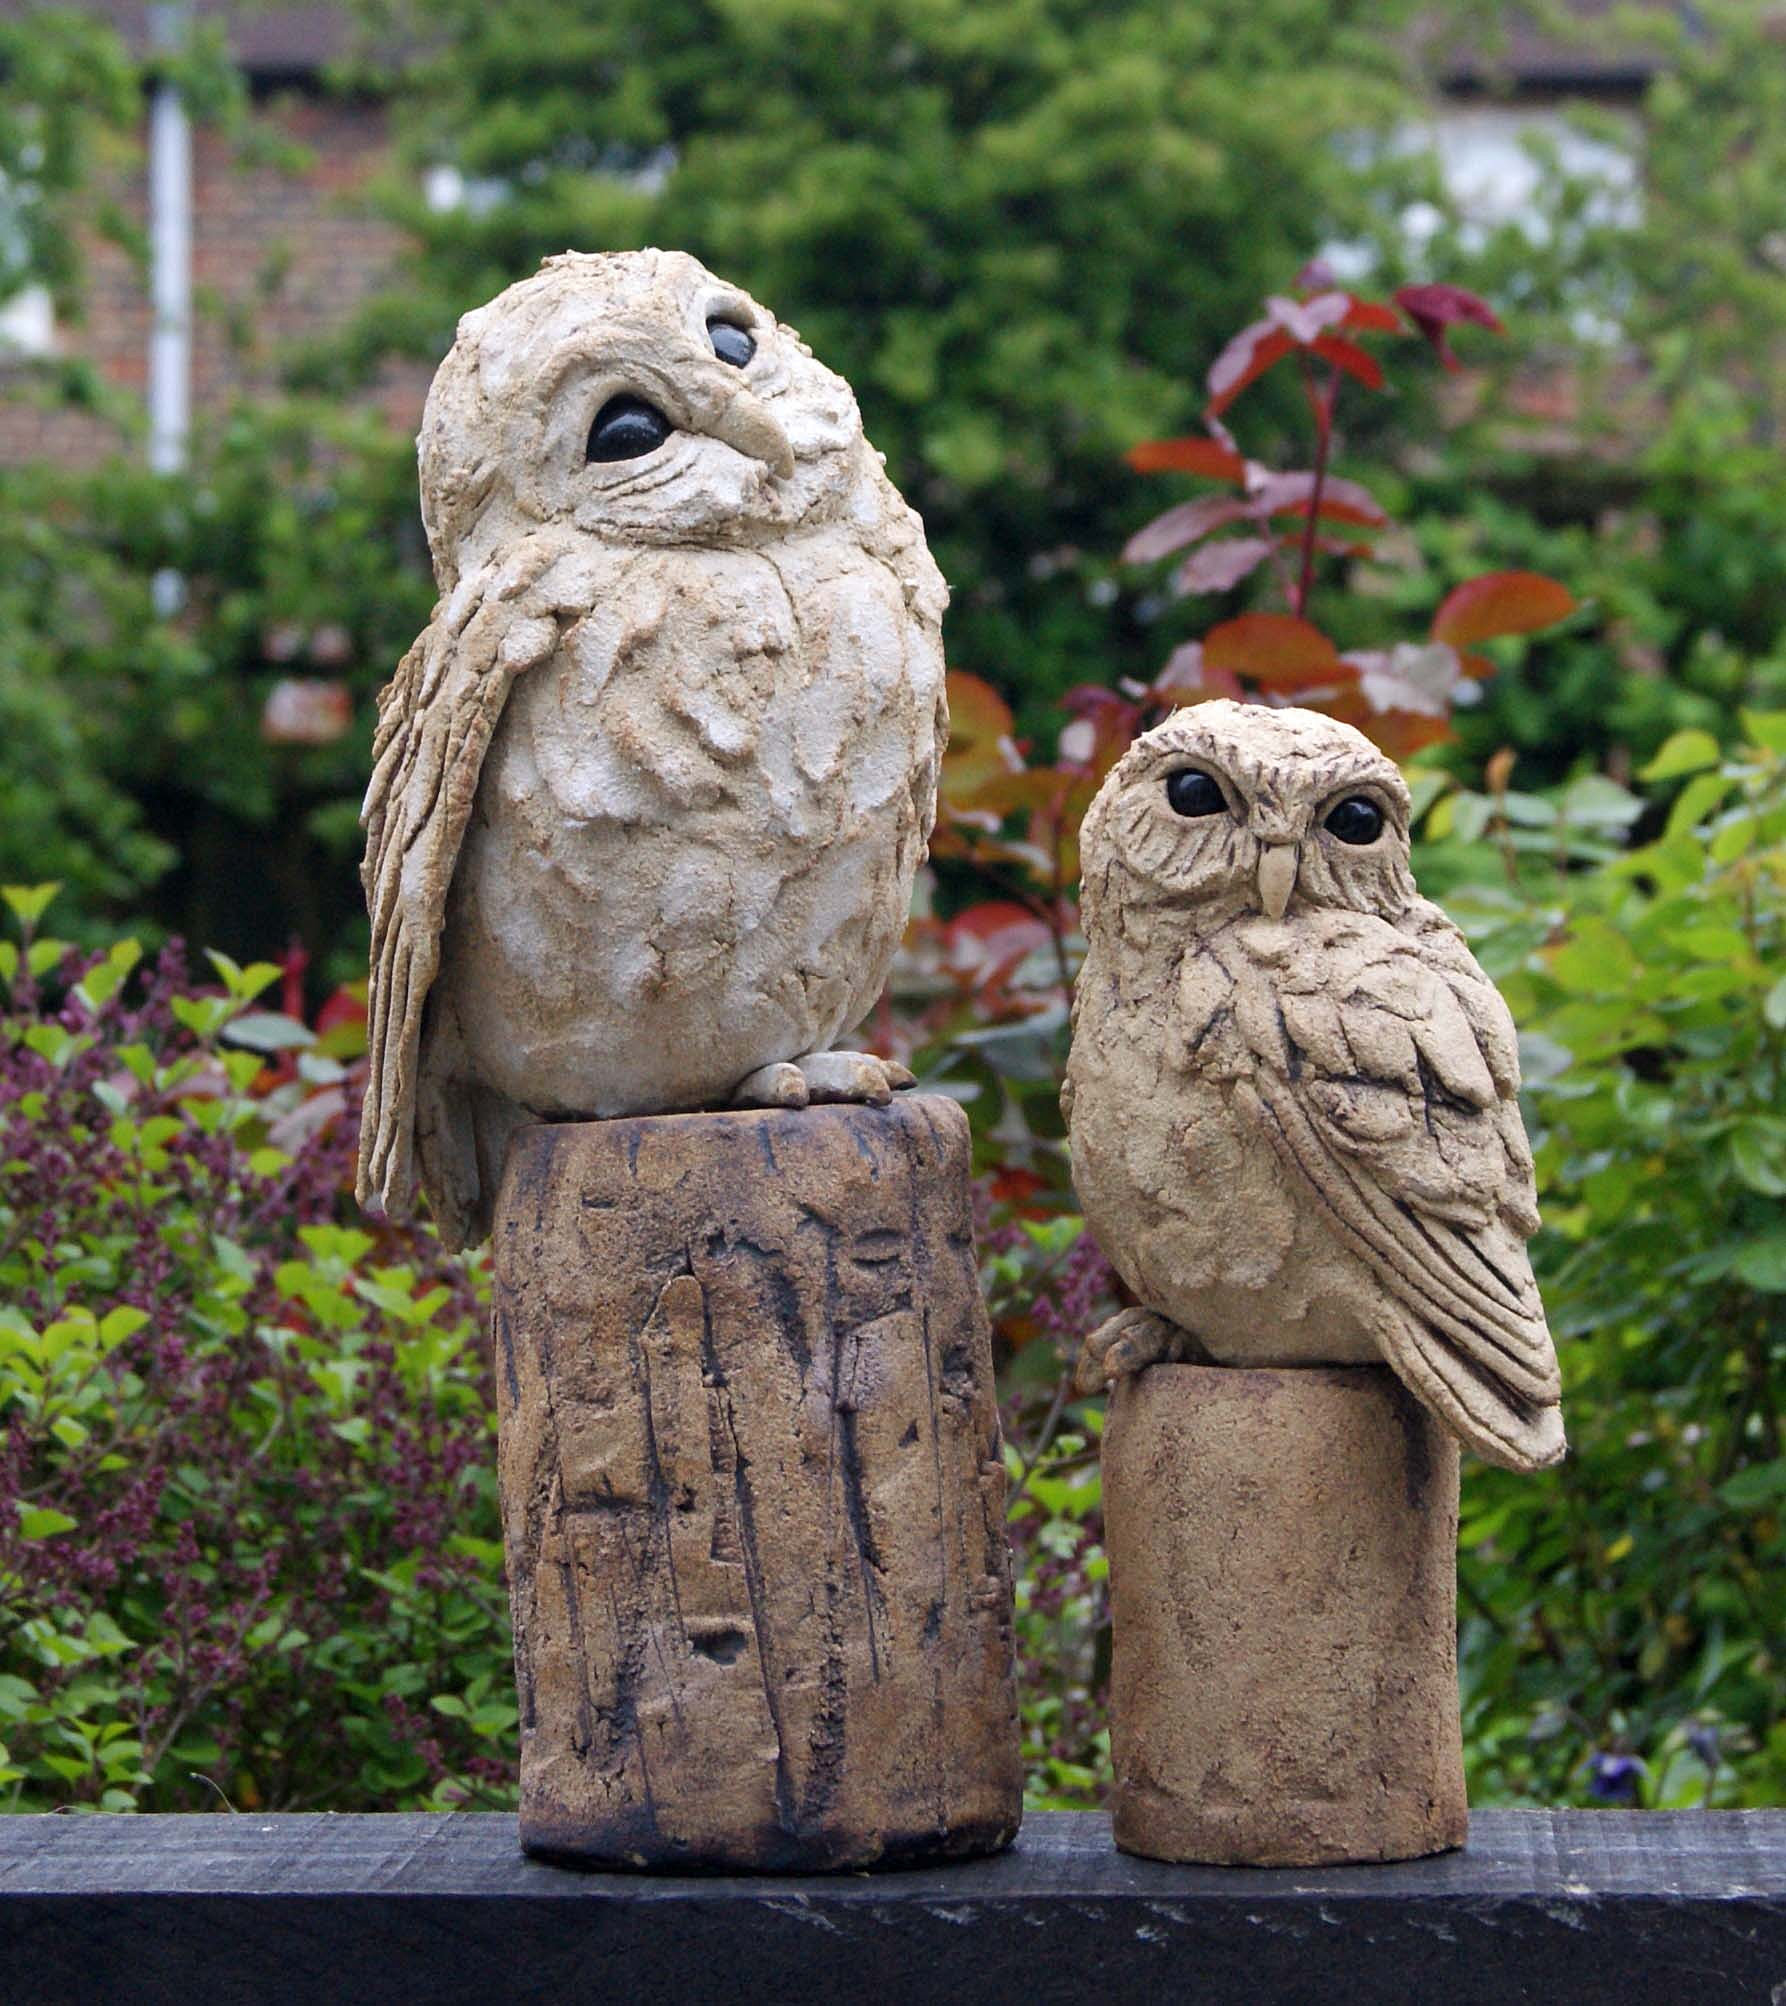 sandra bidmedceramic animal sculpturewest sussex Garden Owls